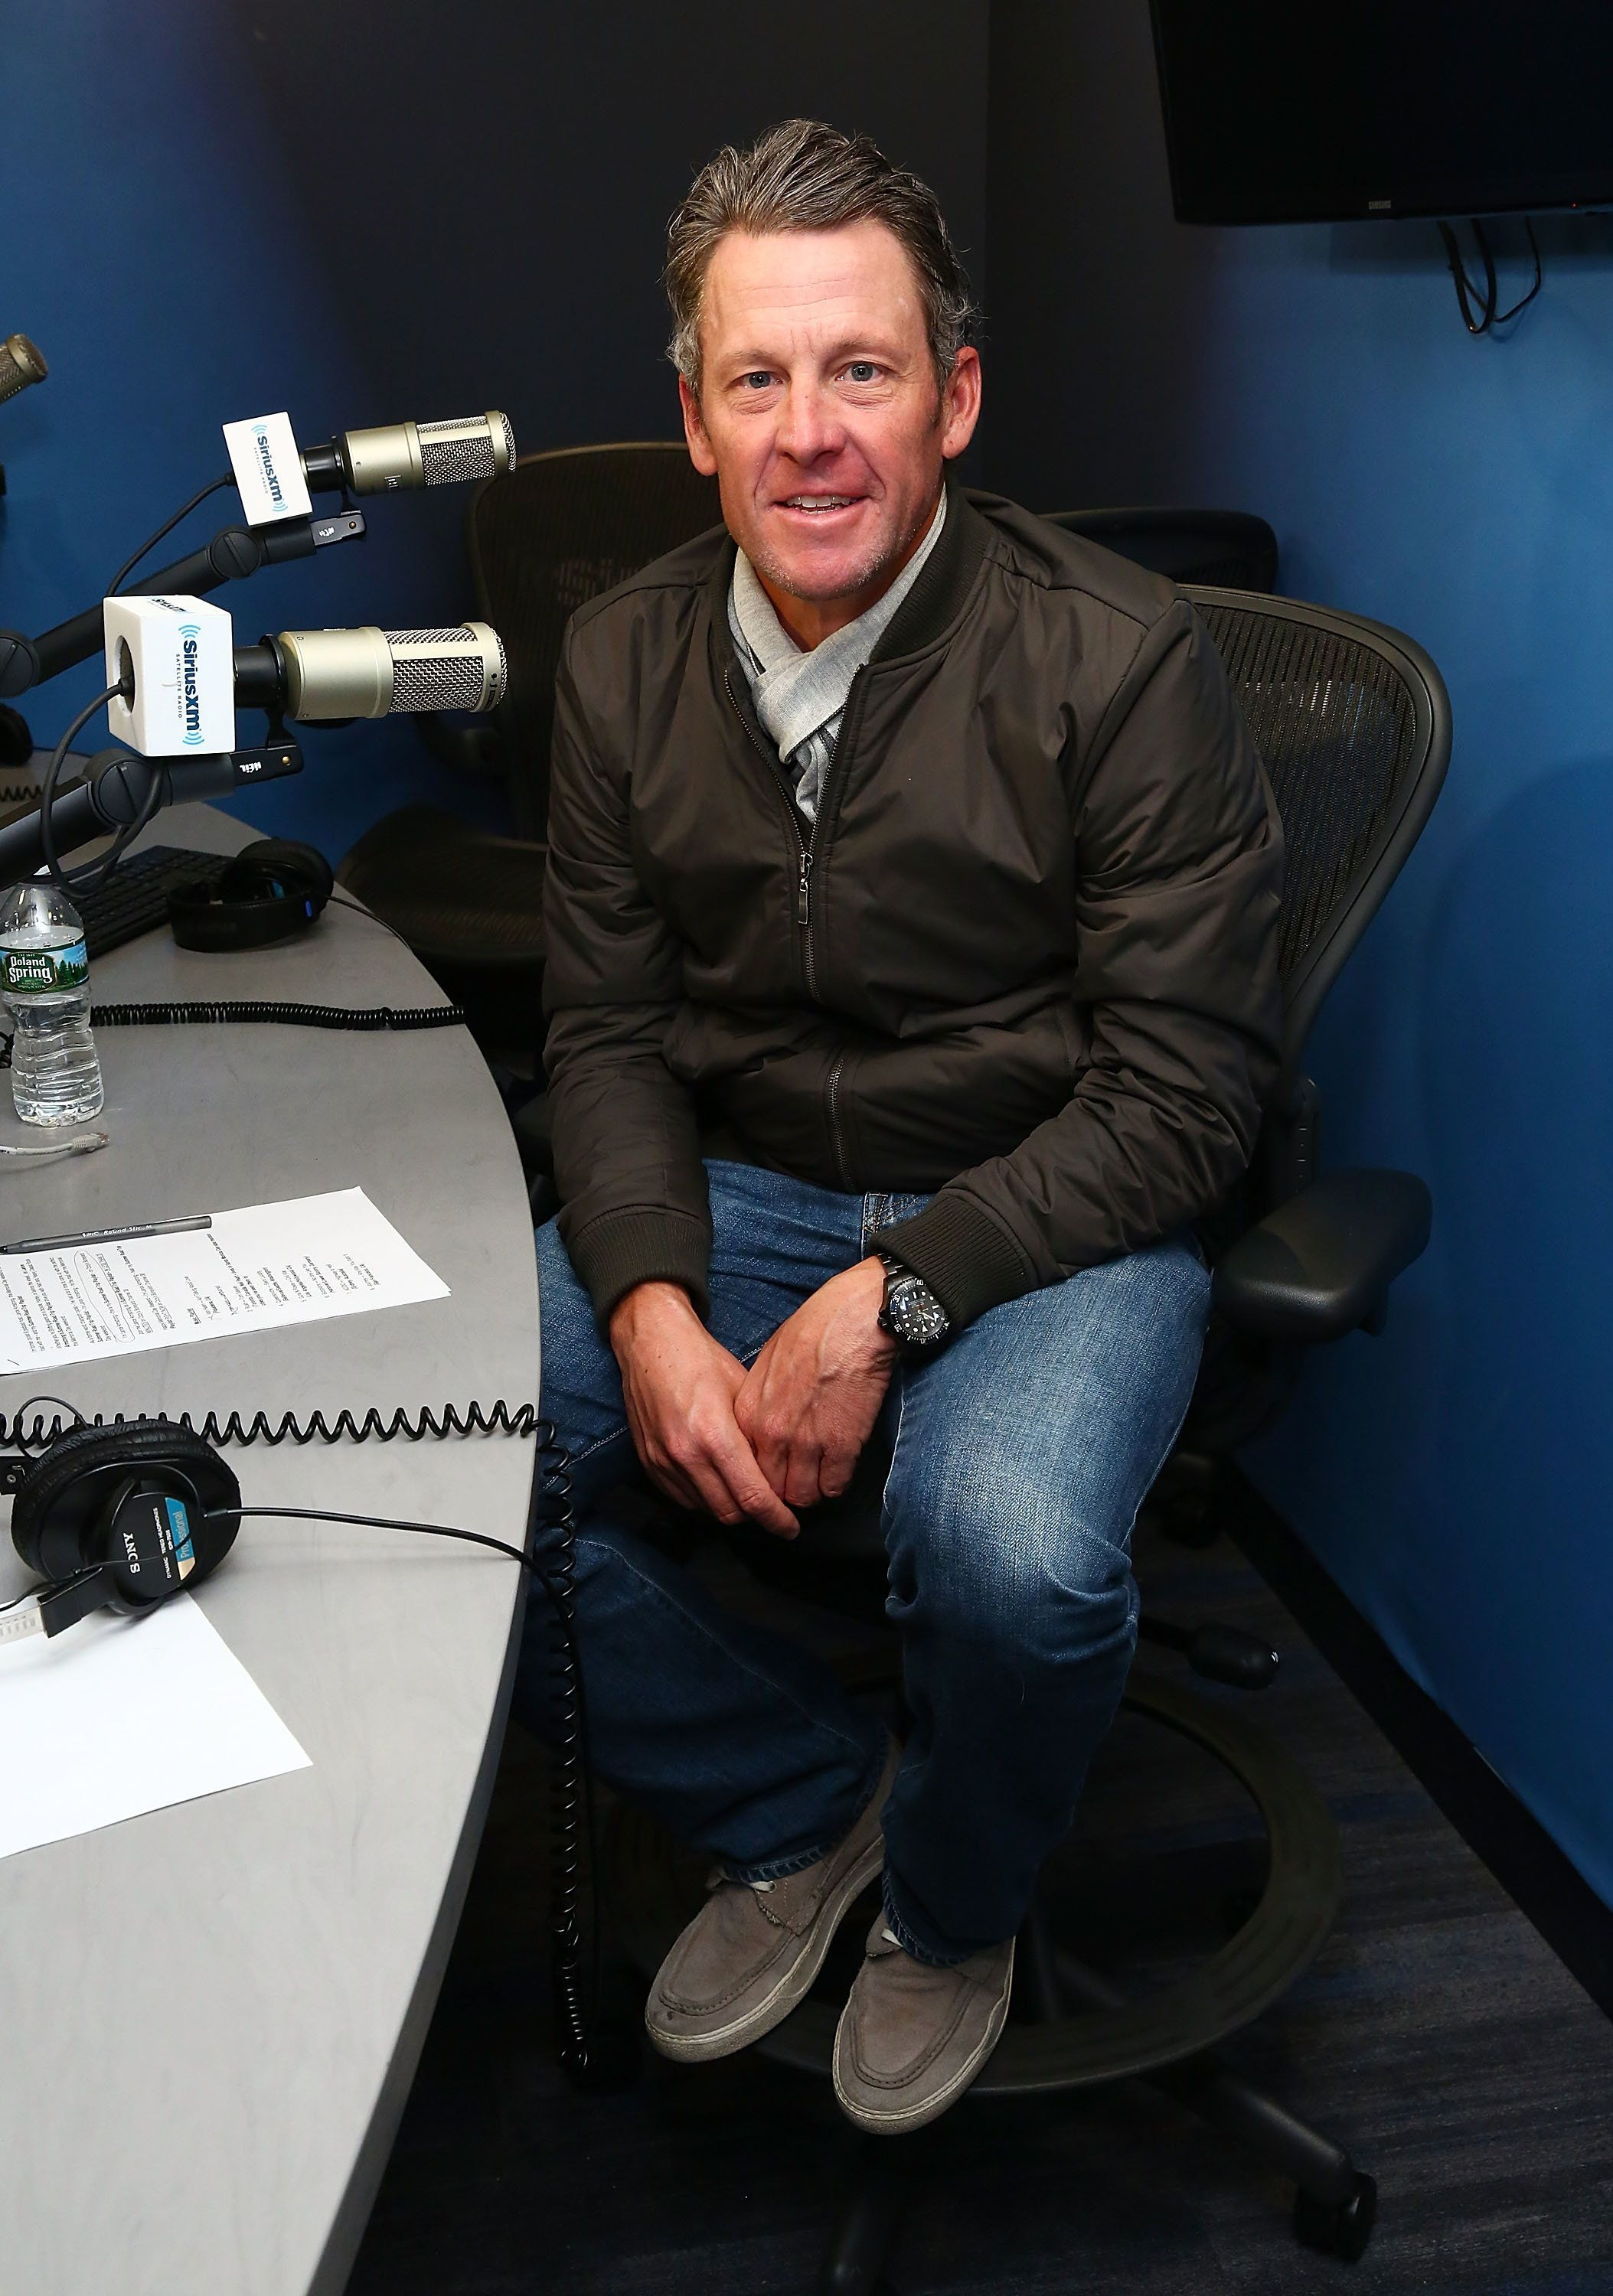 NEW YORK, NY - MARCH 06:  (EXCLUSIVE COVERAGE) Former professional road racing cyclist Lance Armstrong visits the SiriusXM Studios on March 6, 2017 in New York City.  (Photo by Astrid Stawiarz/Getty Images)